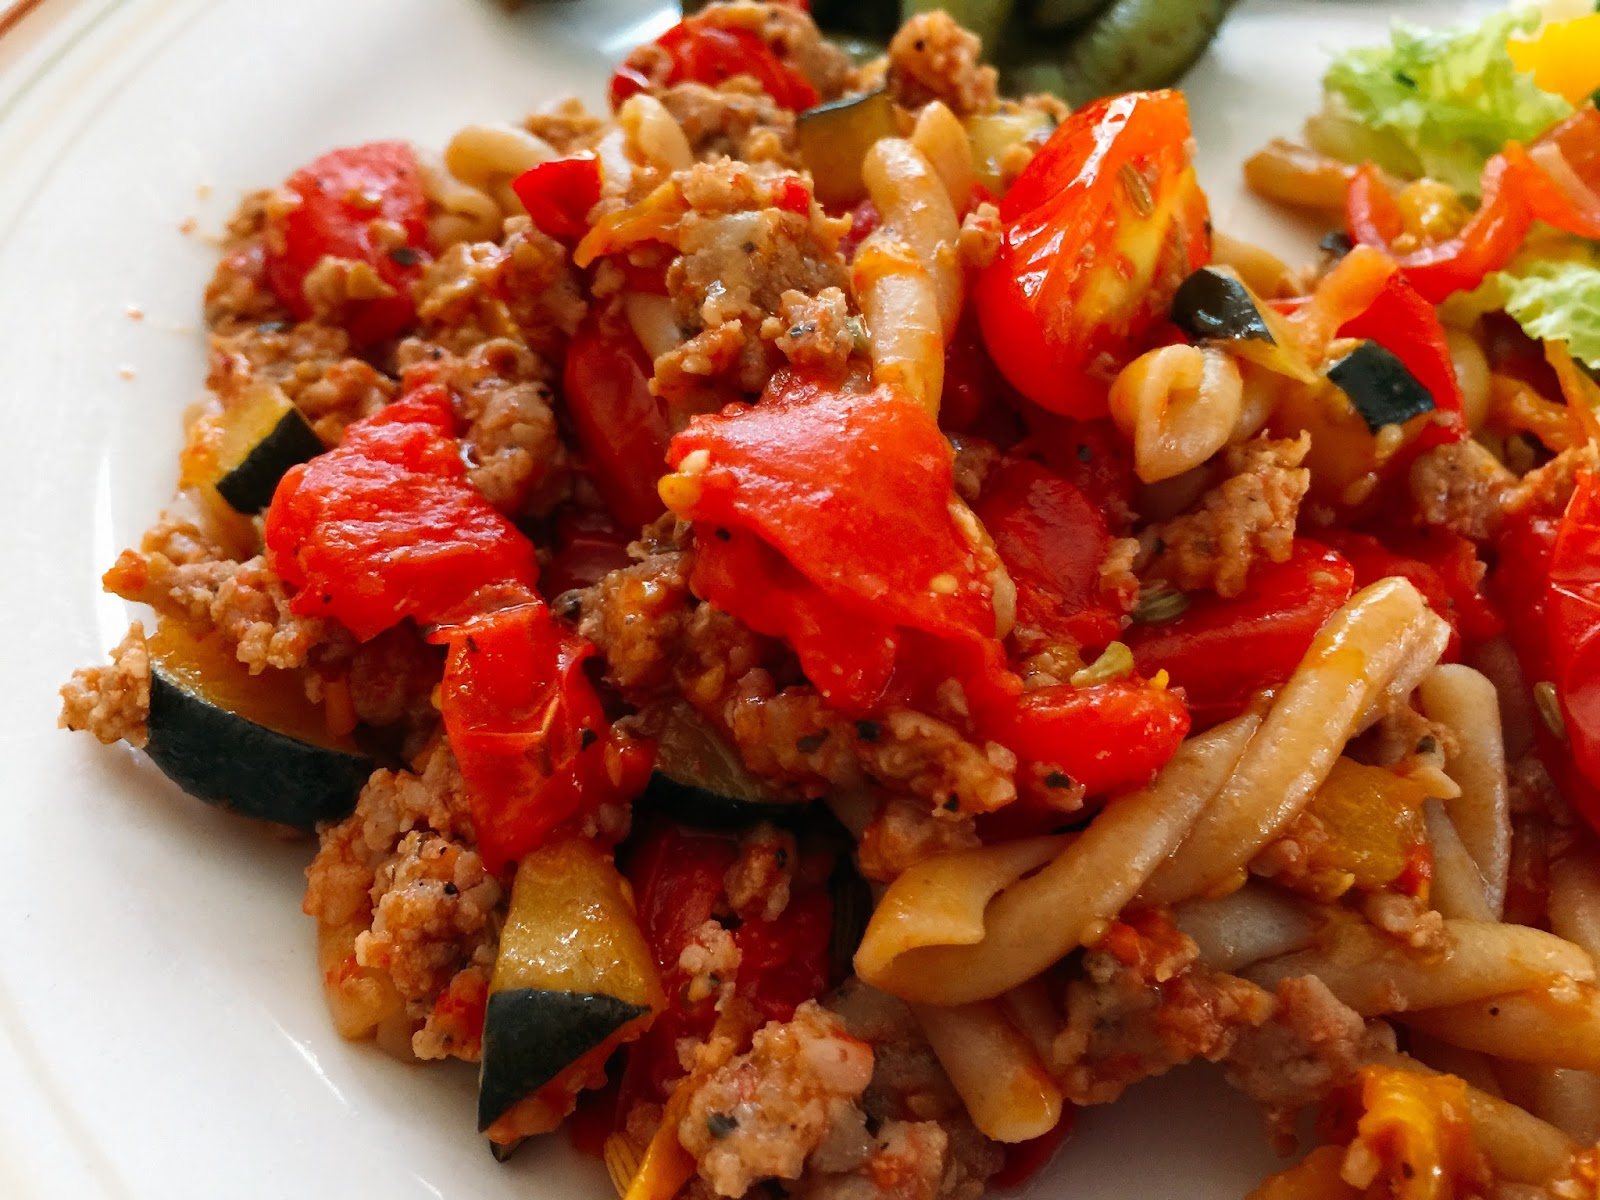 ... Recipes From Alice's Kitchen: Pasta with Peppers, Squash, and Tomatoes